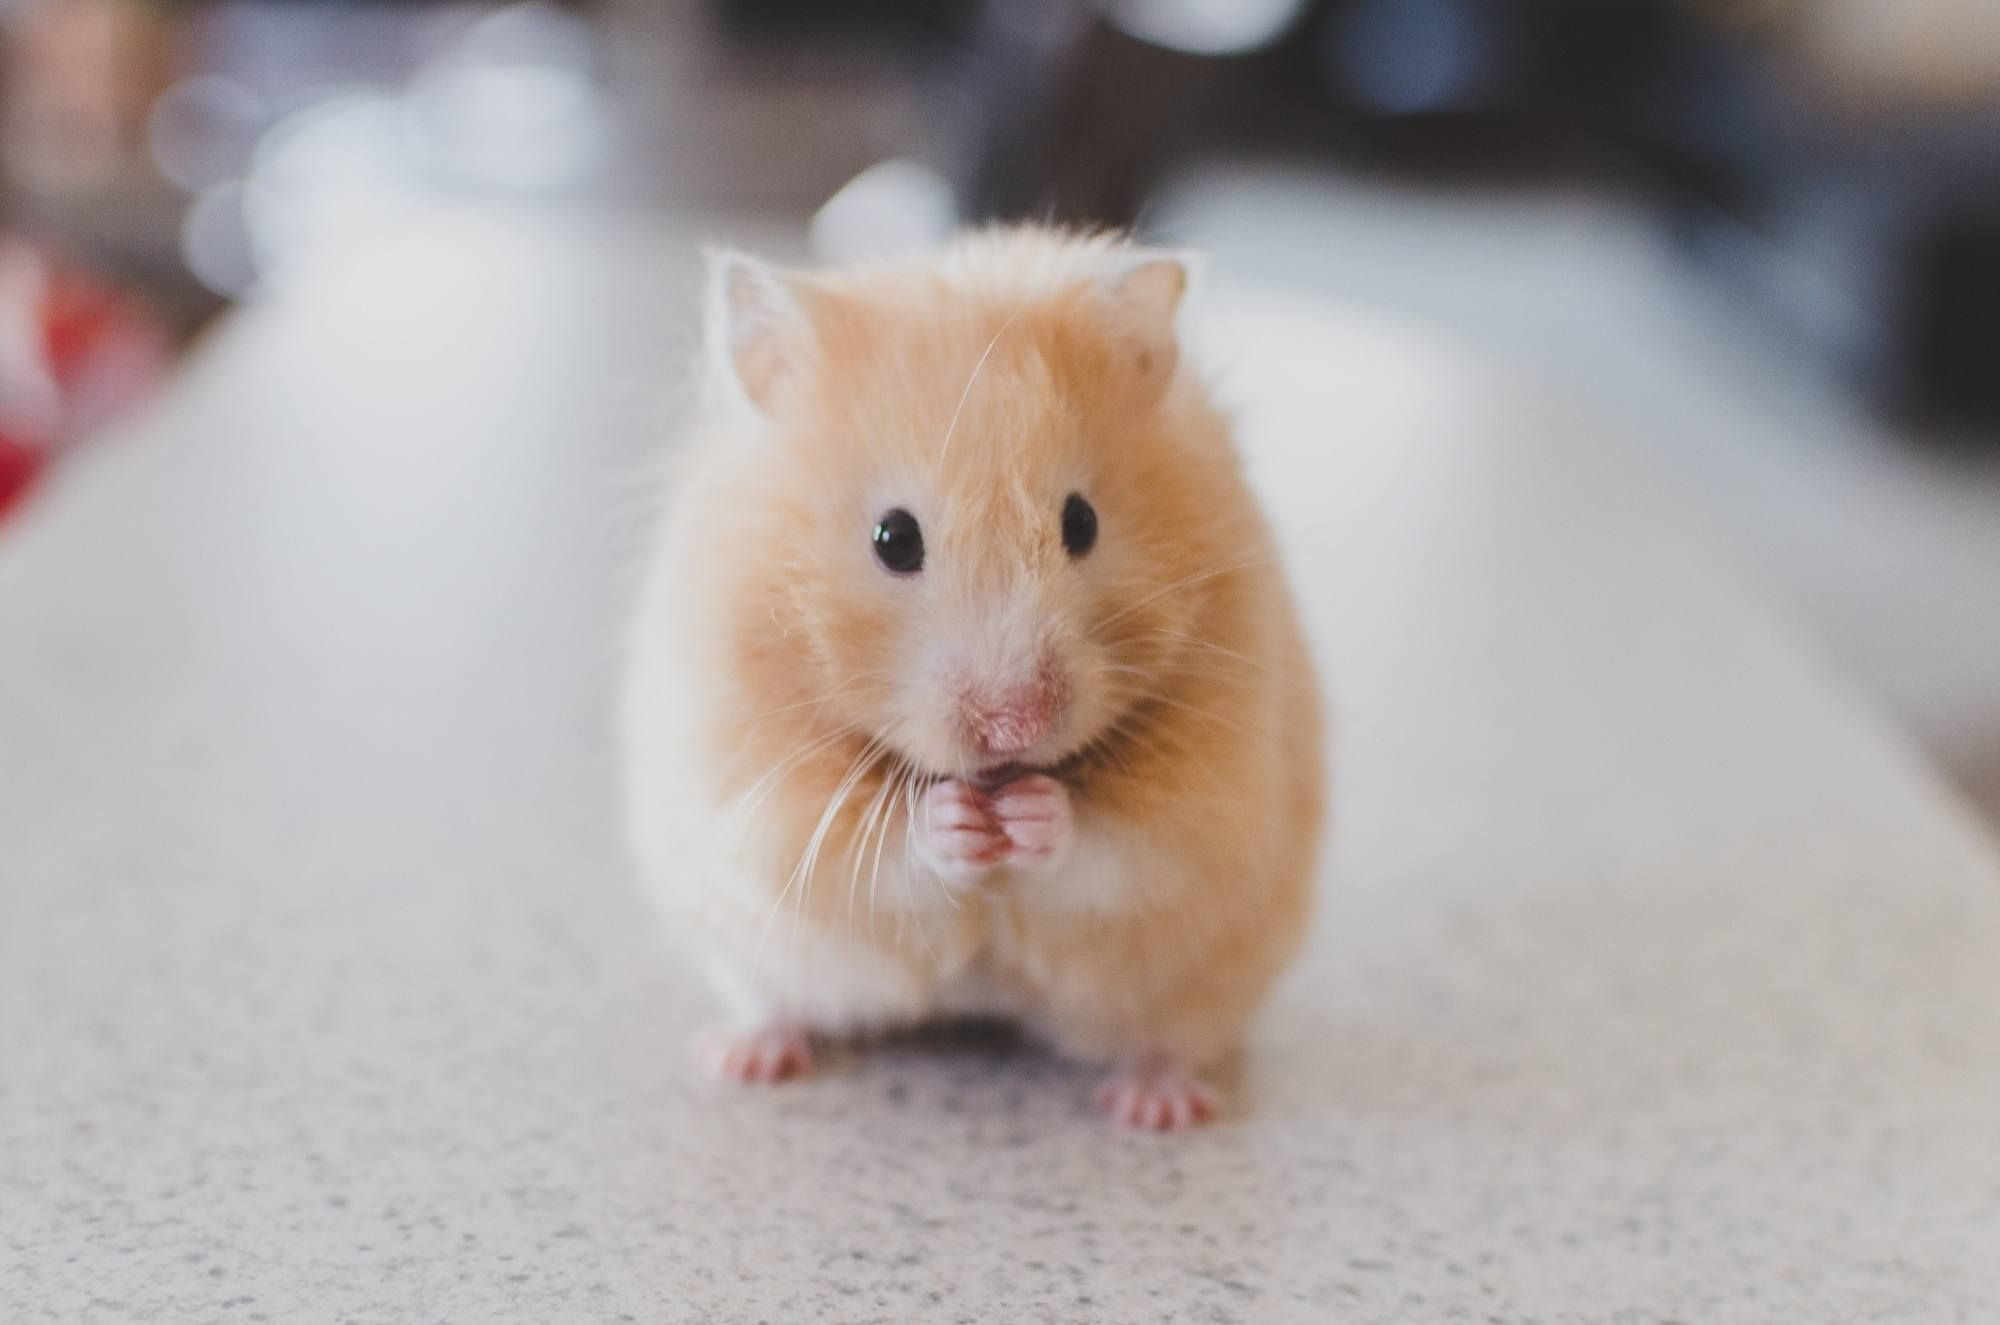 Getting Off the Hamster Wheel (With images) Hamsters as